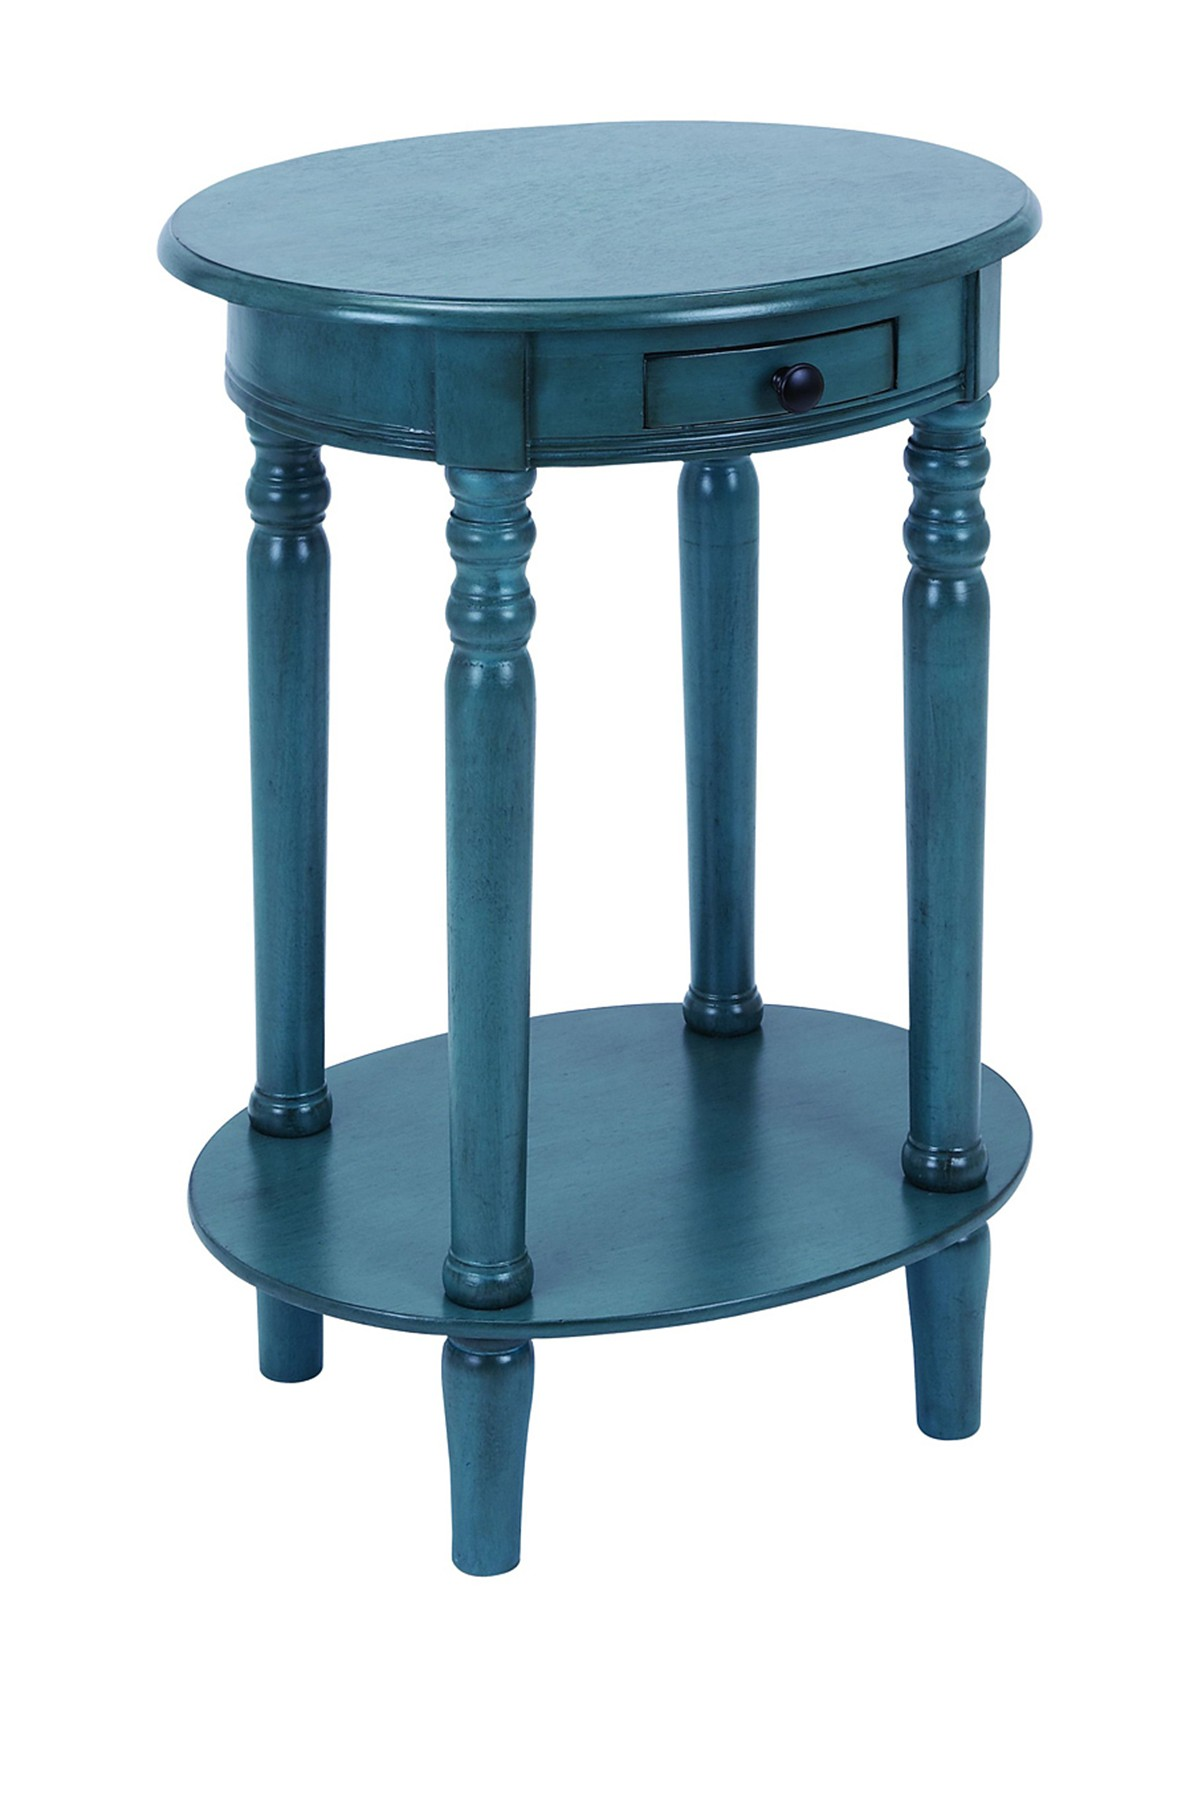 uma azul farmhouse accent table nordstrom rack wood kitchen sets inch high coffee country tables small pedestal side counter height dining set teen desk plate mat glass and metal